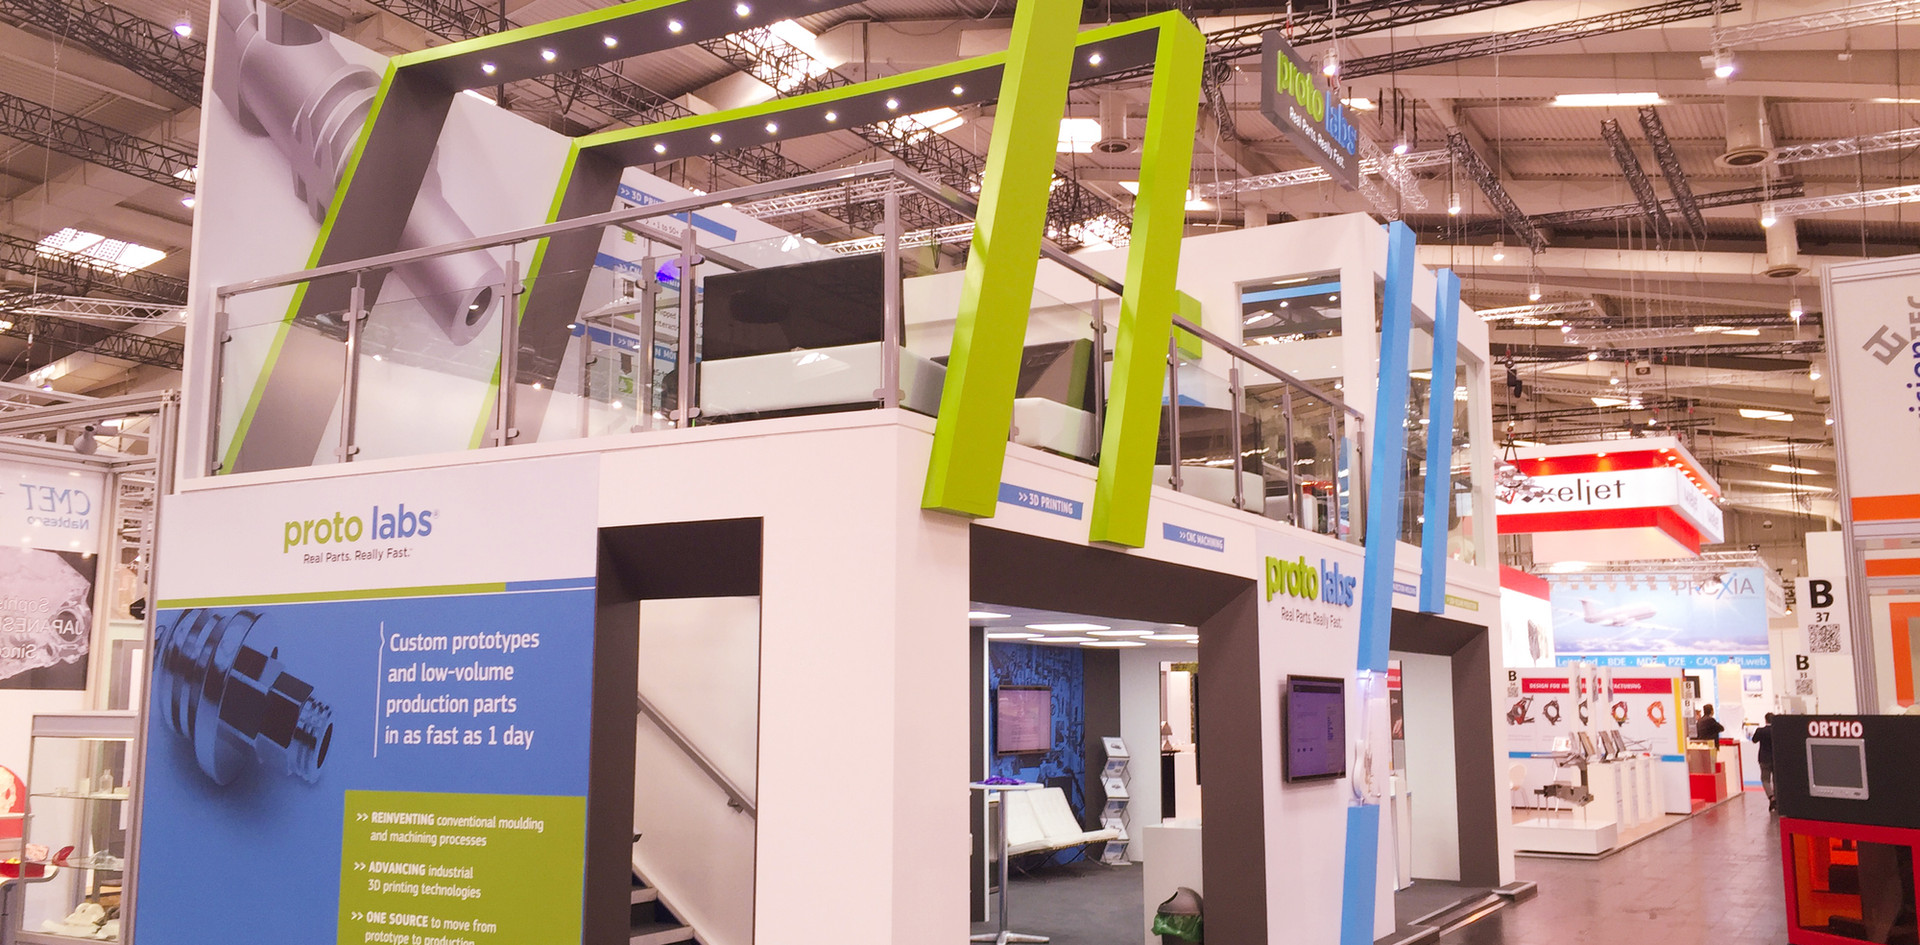 Proto Labs Hannover Messe.jpg